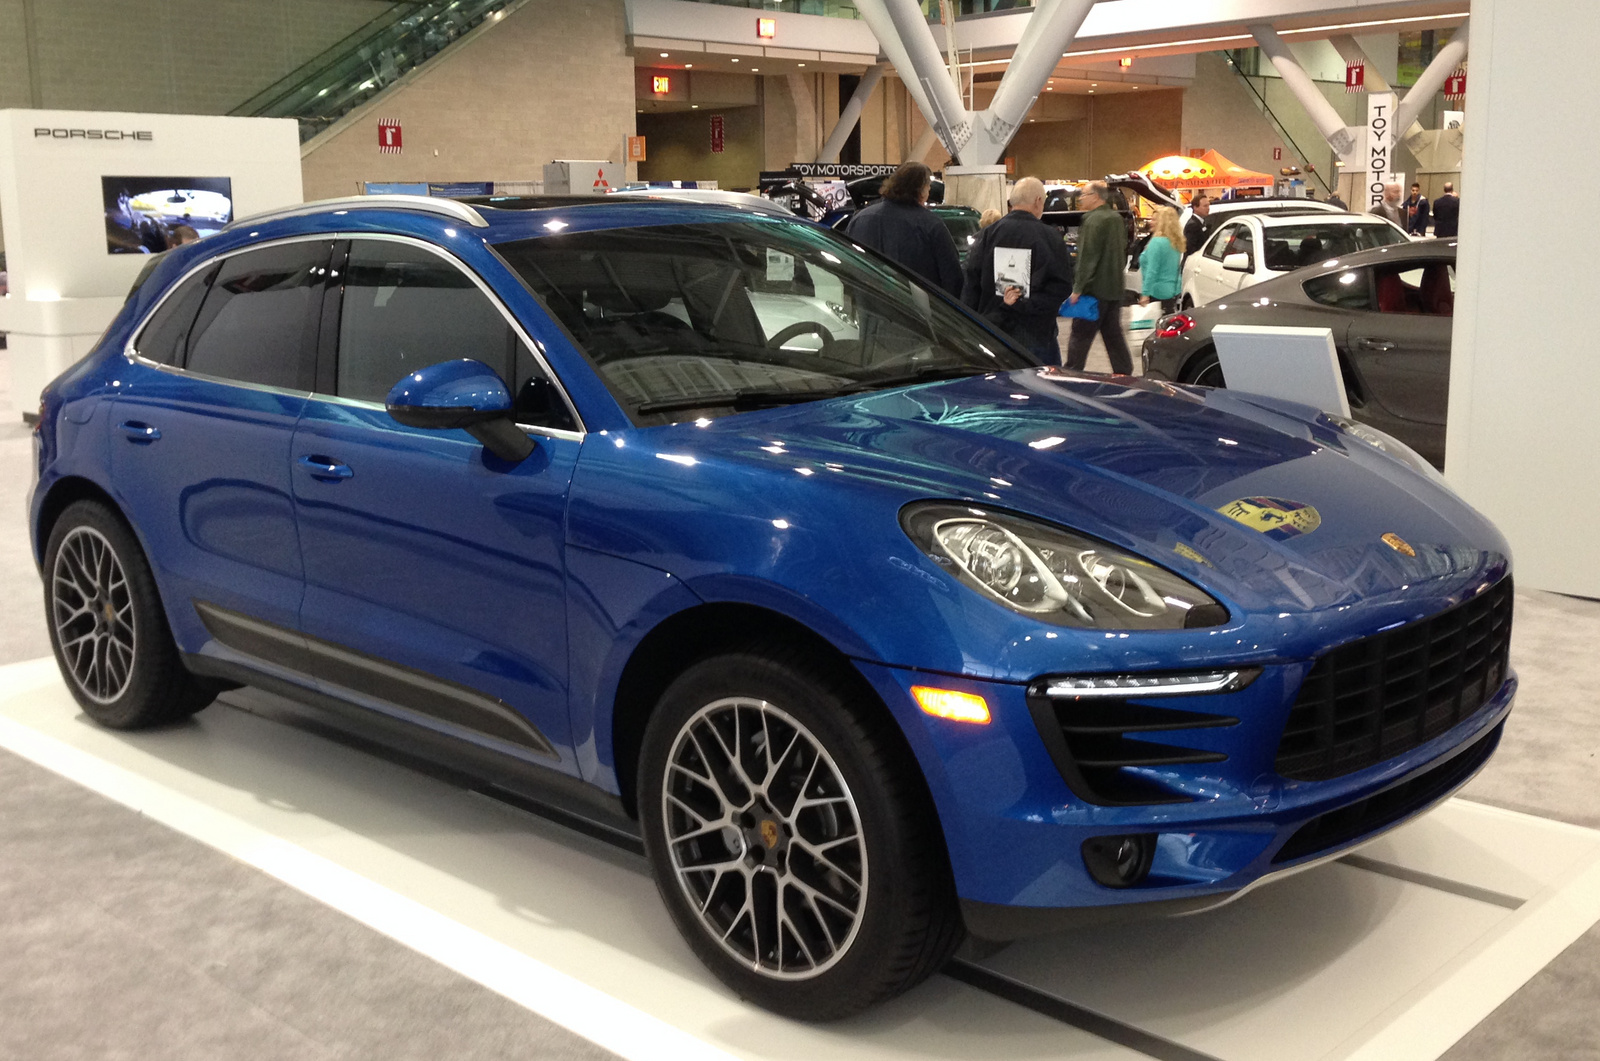 Front-quarter view at the New England Int'l Auto Show.